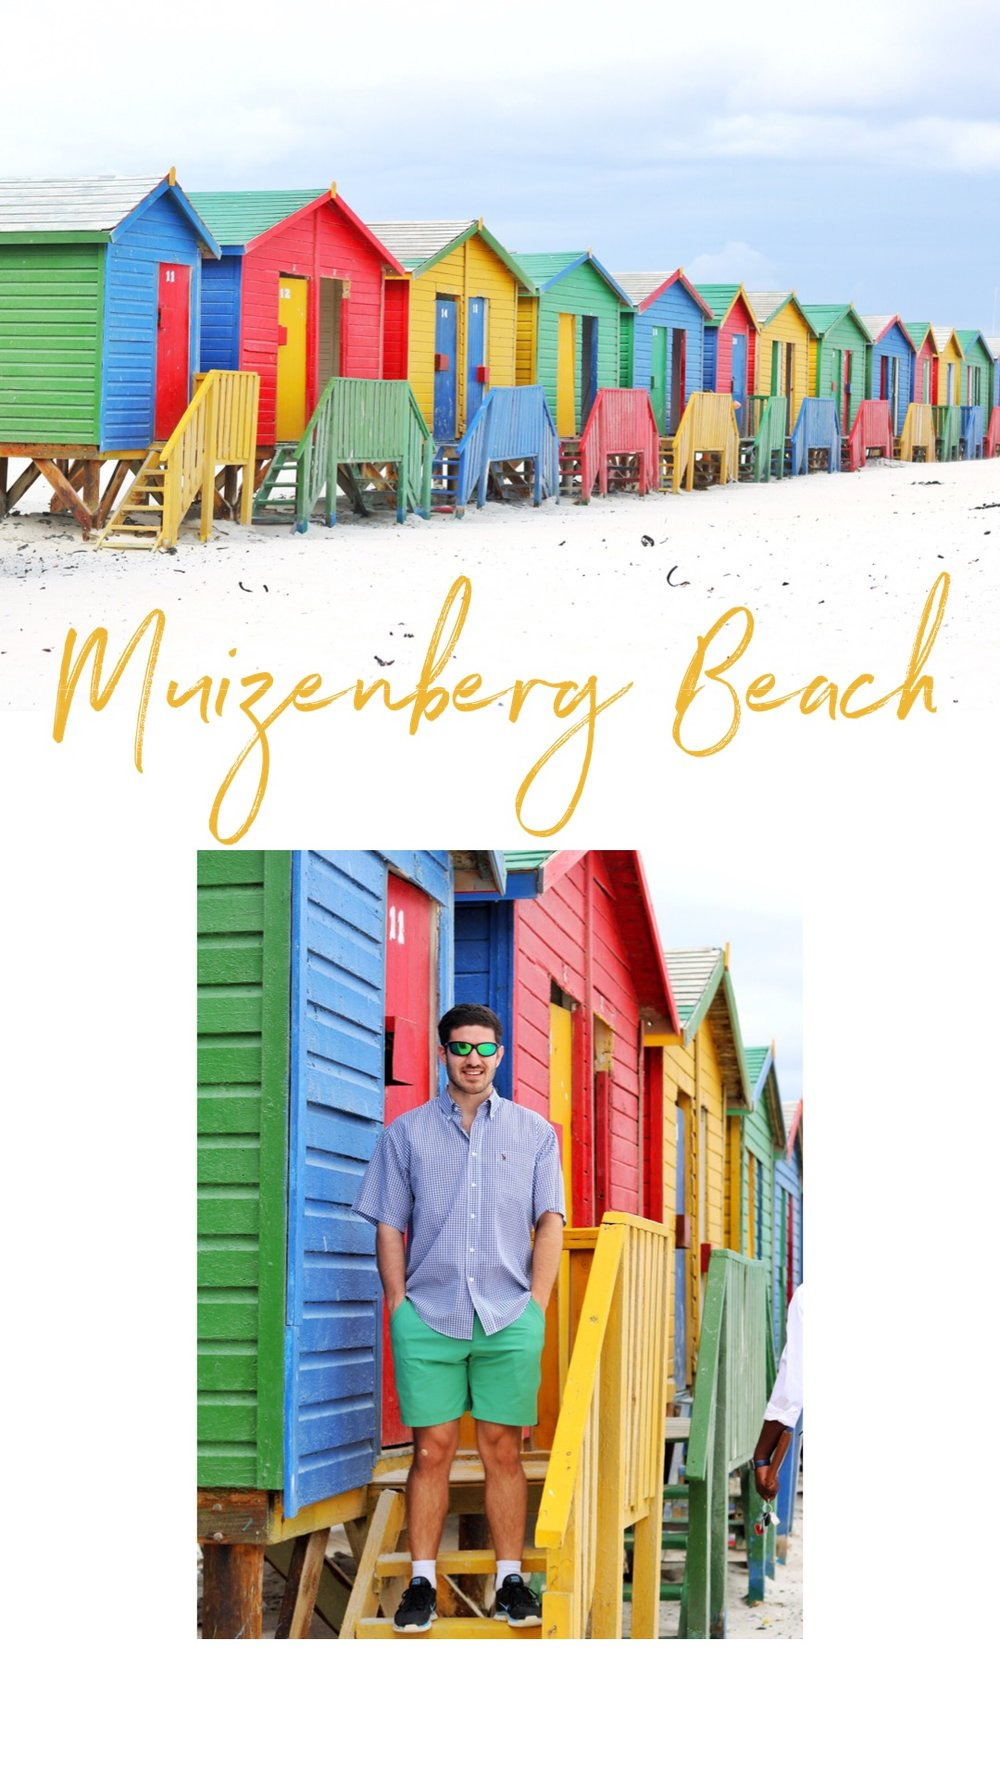 Picturesque Surfer Huts - Muizenberg is one of the main beaches where the surfers go, hence the colorful huts! We came here for the photo op :D